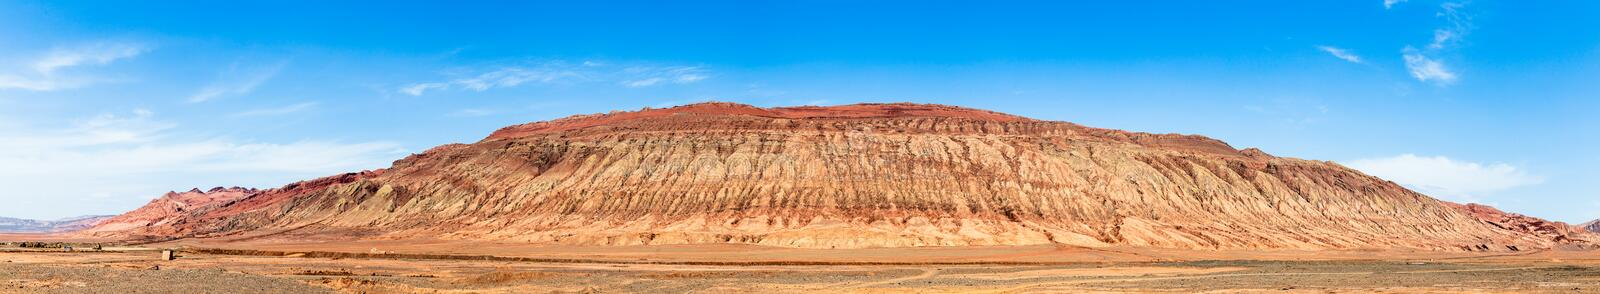 """Flaming mountains, Turpan, Xinjiang, China: these intense red mountains appear in the Chinese epic """"Journey to the west"""". Flaming mountains, Turpan stock photography"""